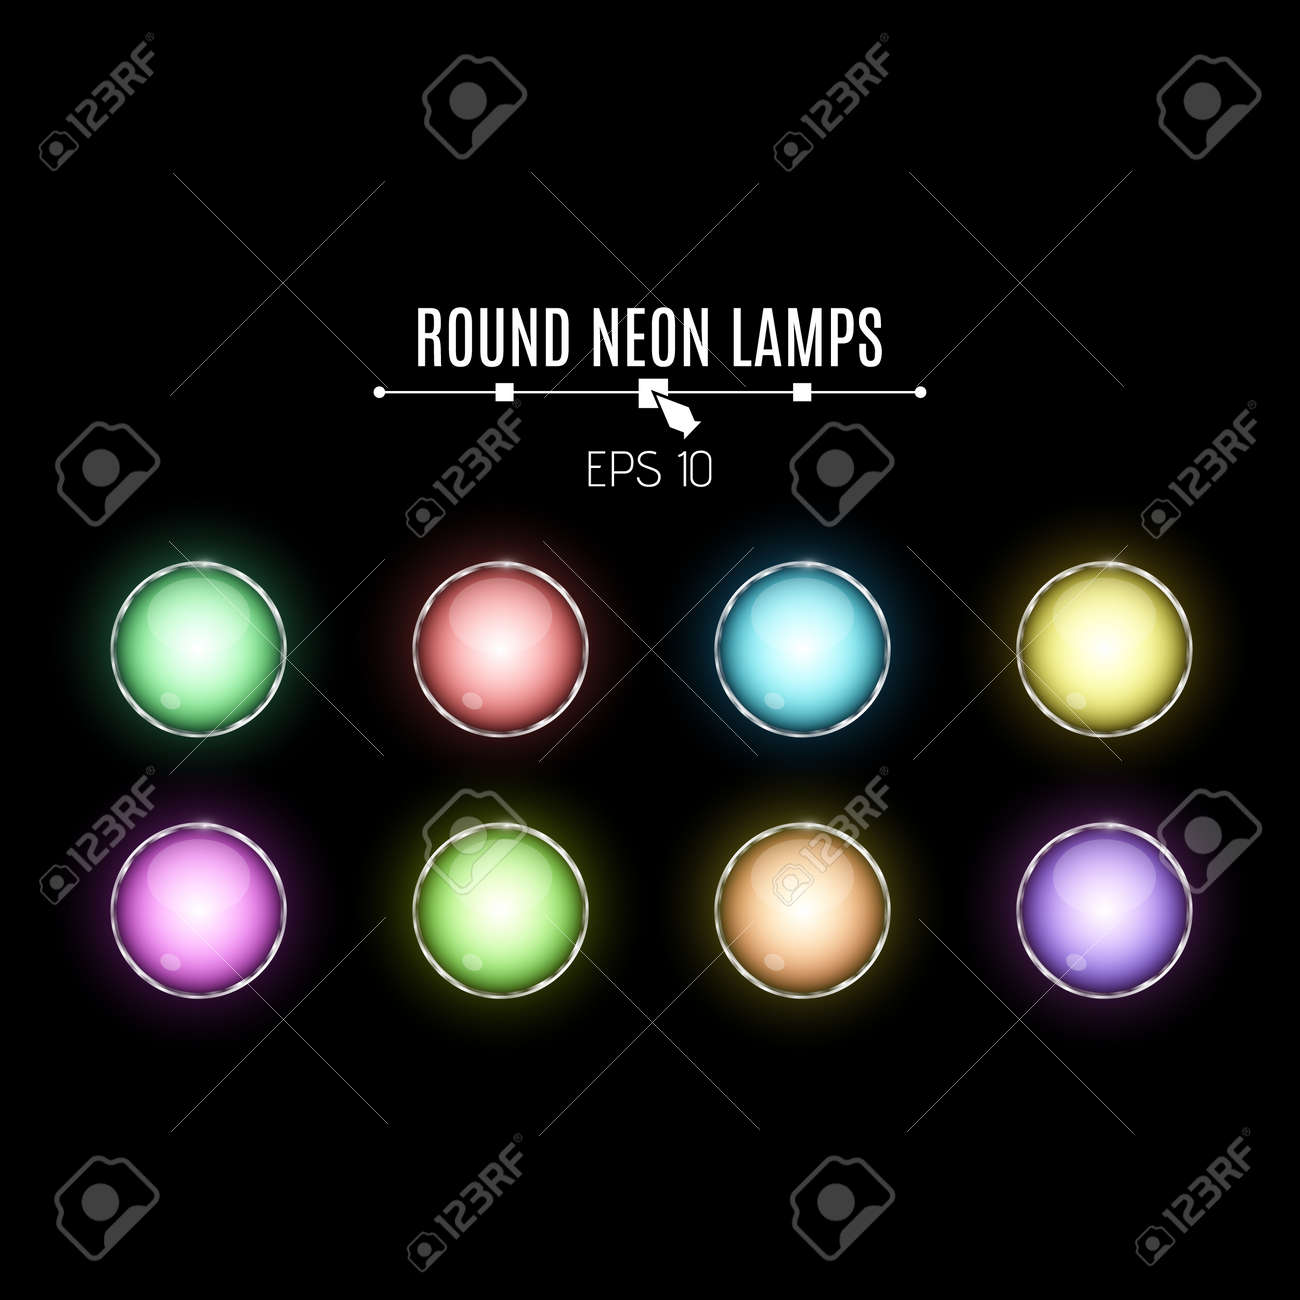 A Set Of Realistic, Round, Neon Lamps. Multicolored Lamps Glow In The Dark